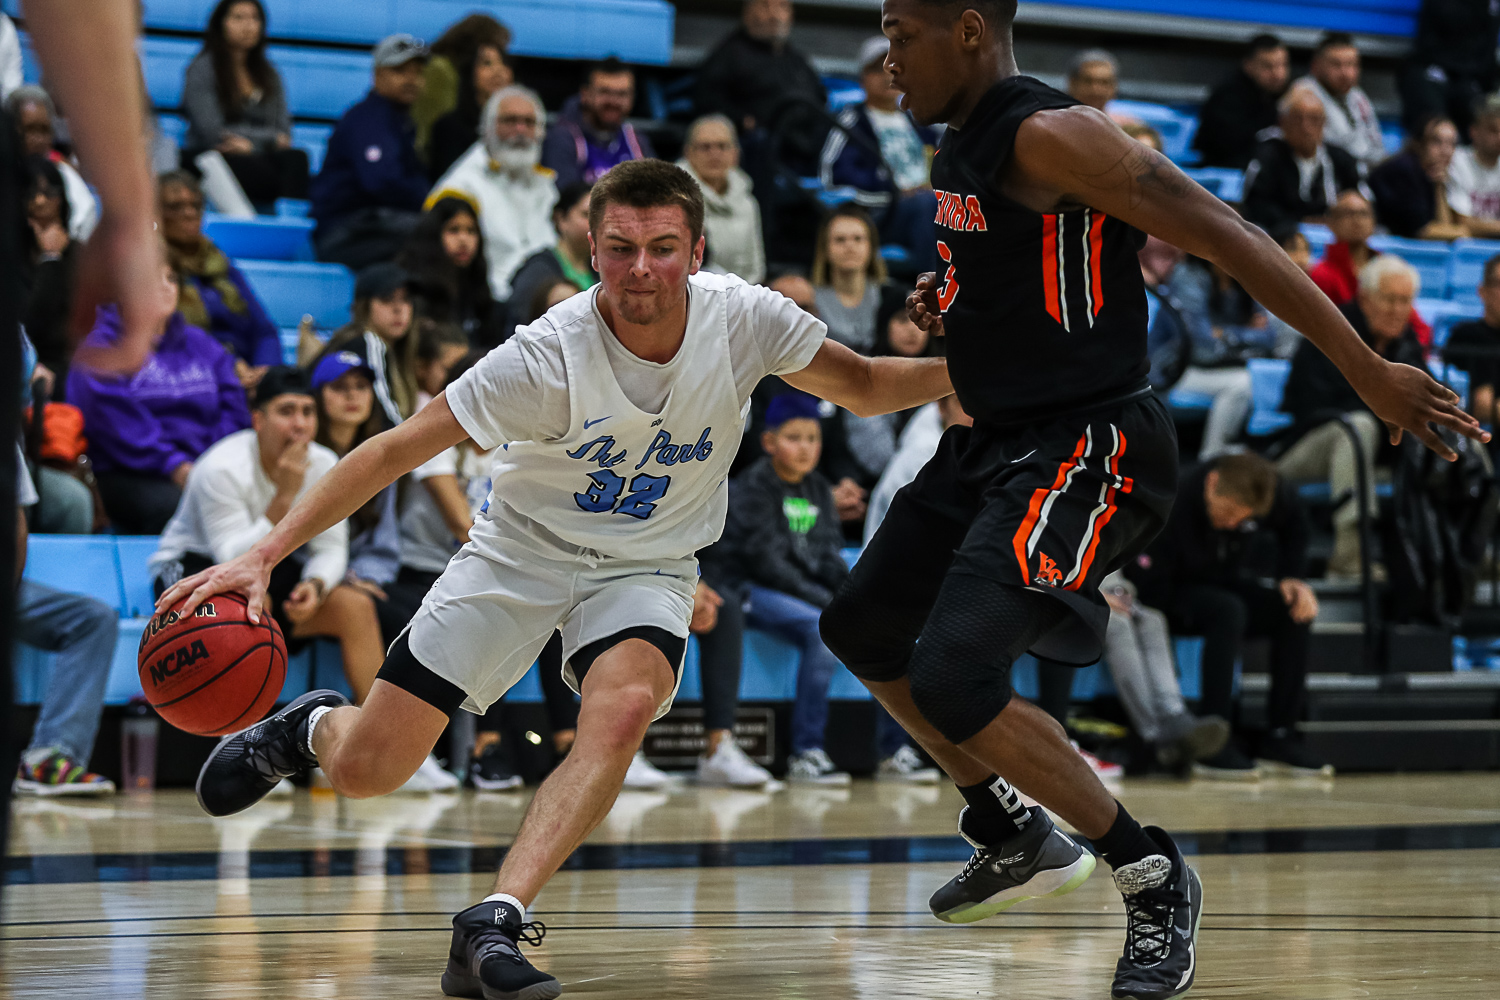 Colton Hage works his way around Ventura College's Dayveon Bates during their conference game at home on Saturday, Jan. 18.  Ventura defeated Moorpark 97-91. Photo credit: Jace Kessler